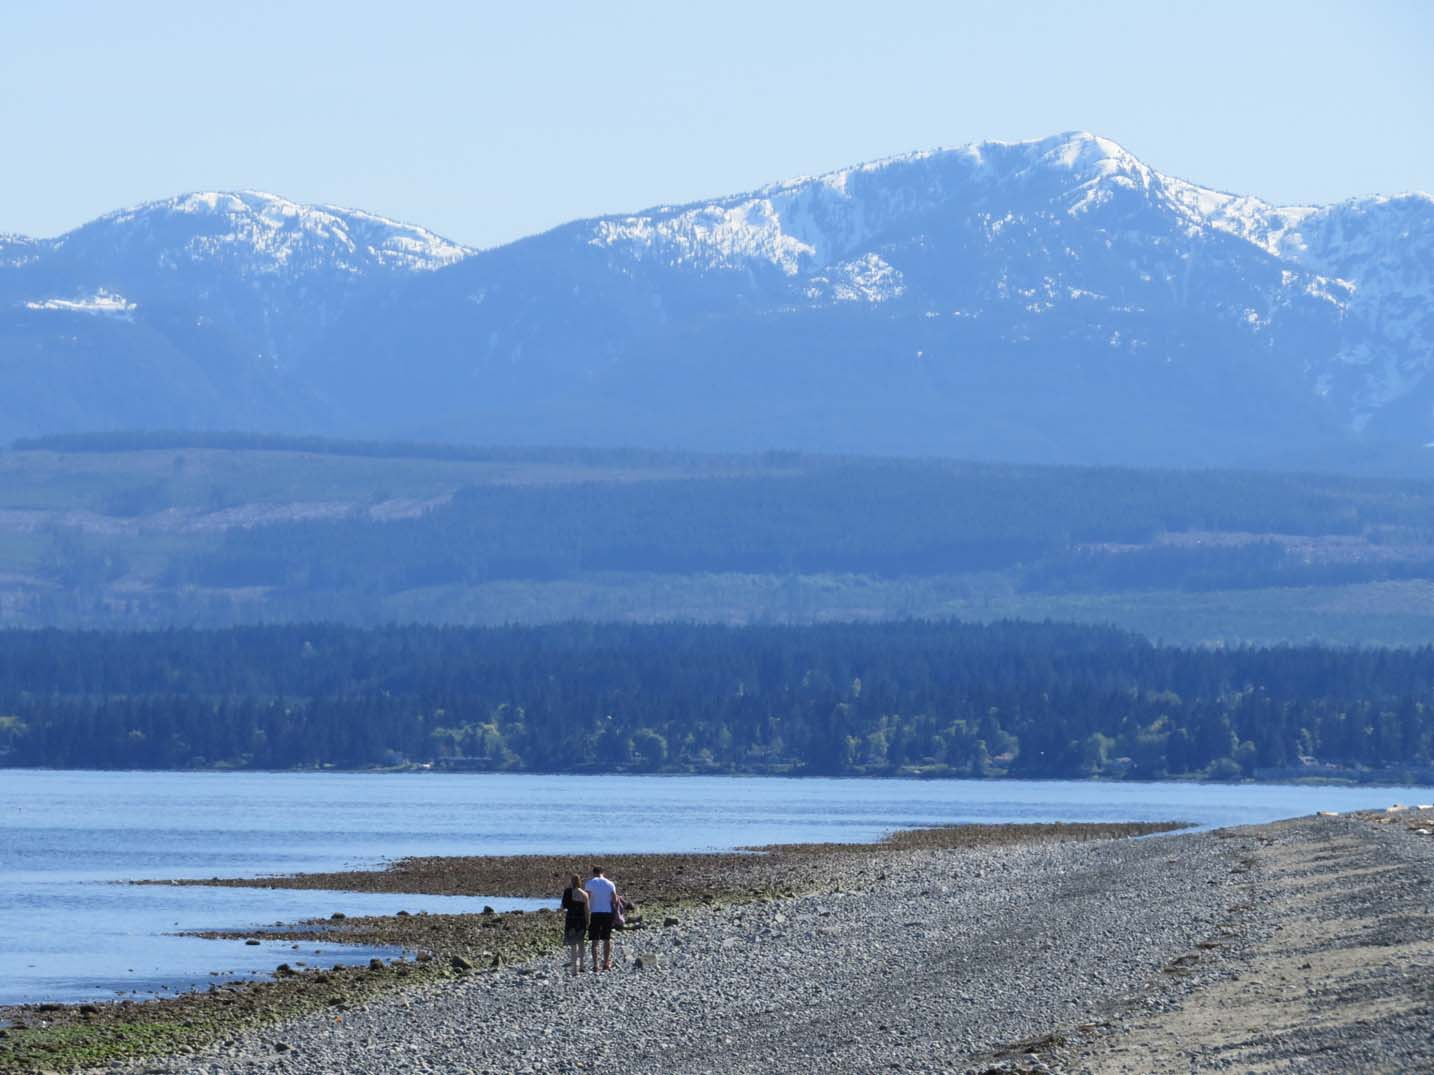 Couple walking on beach with mountains behind - Goose Spit is one of the best beaches in British Columbia